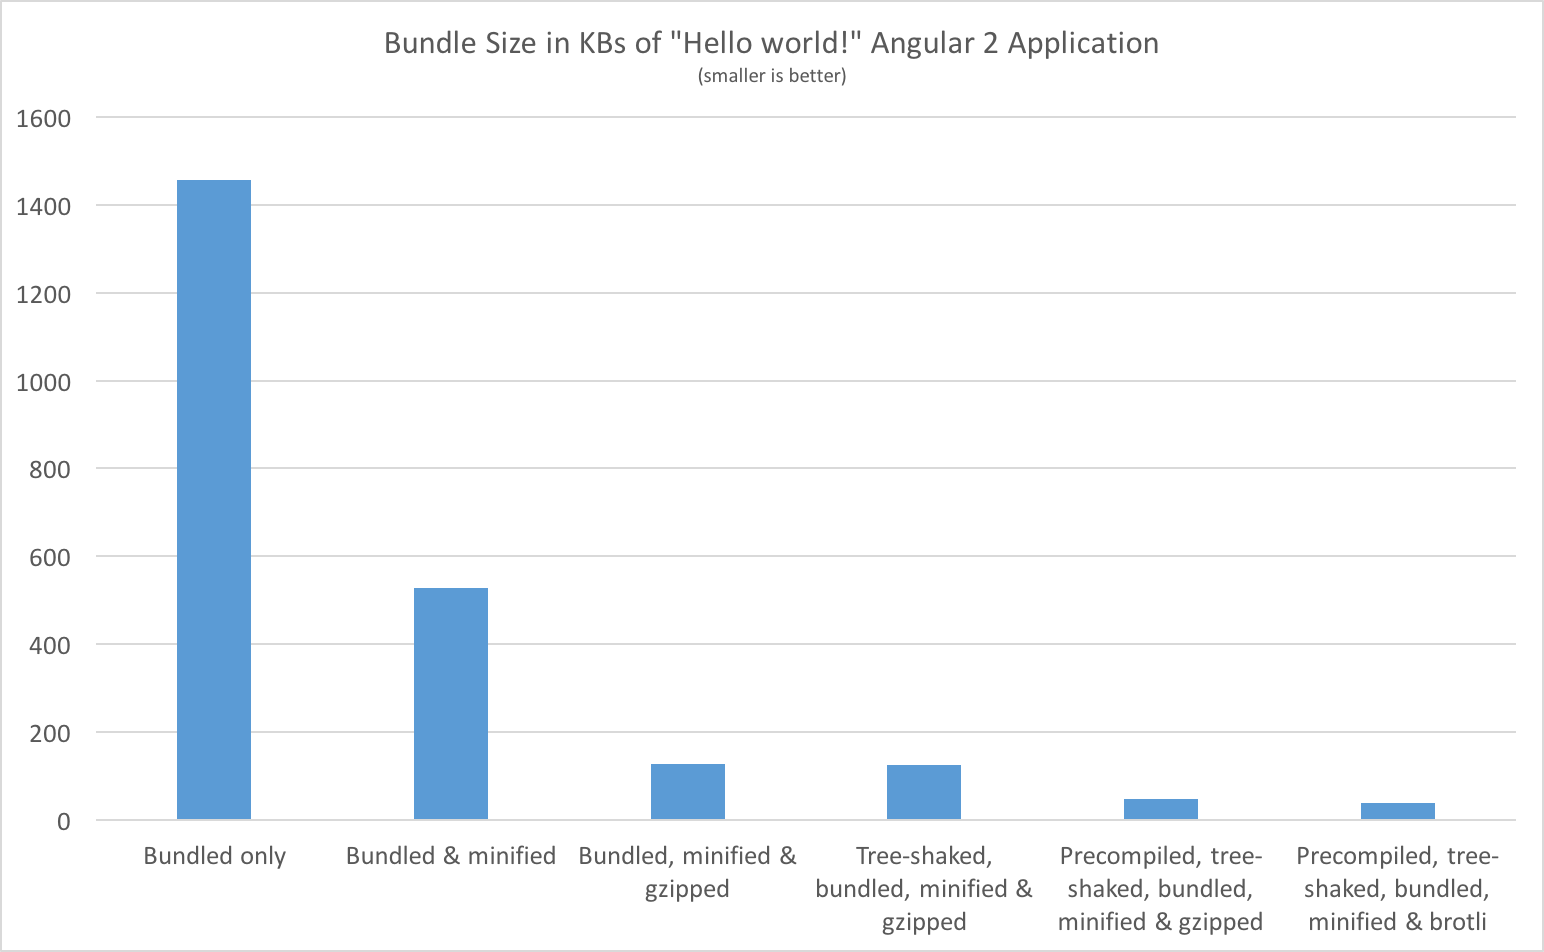 Application Bundle Size